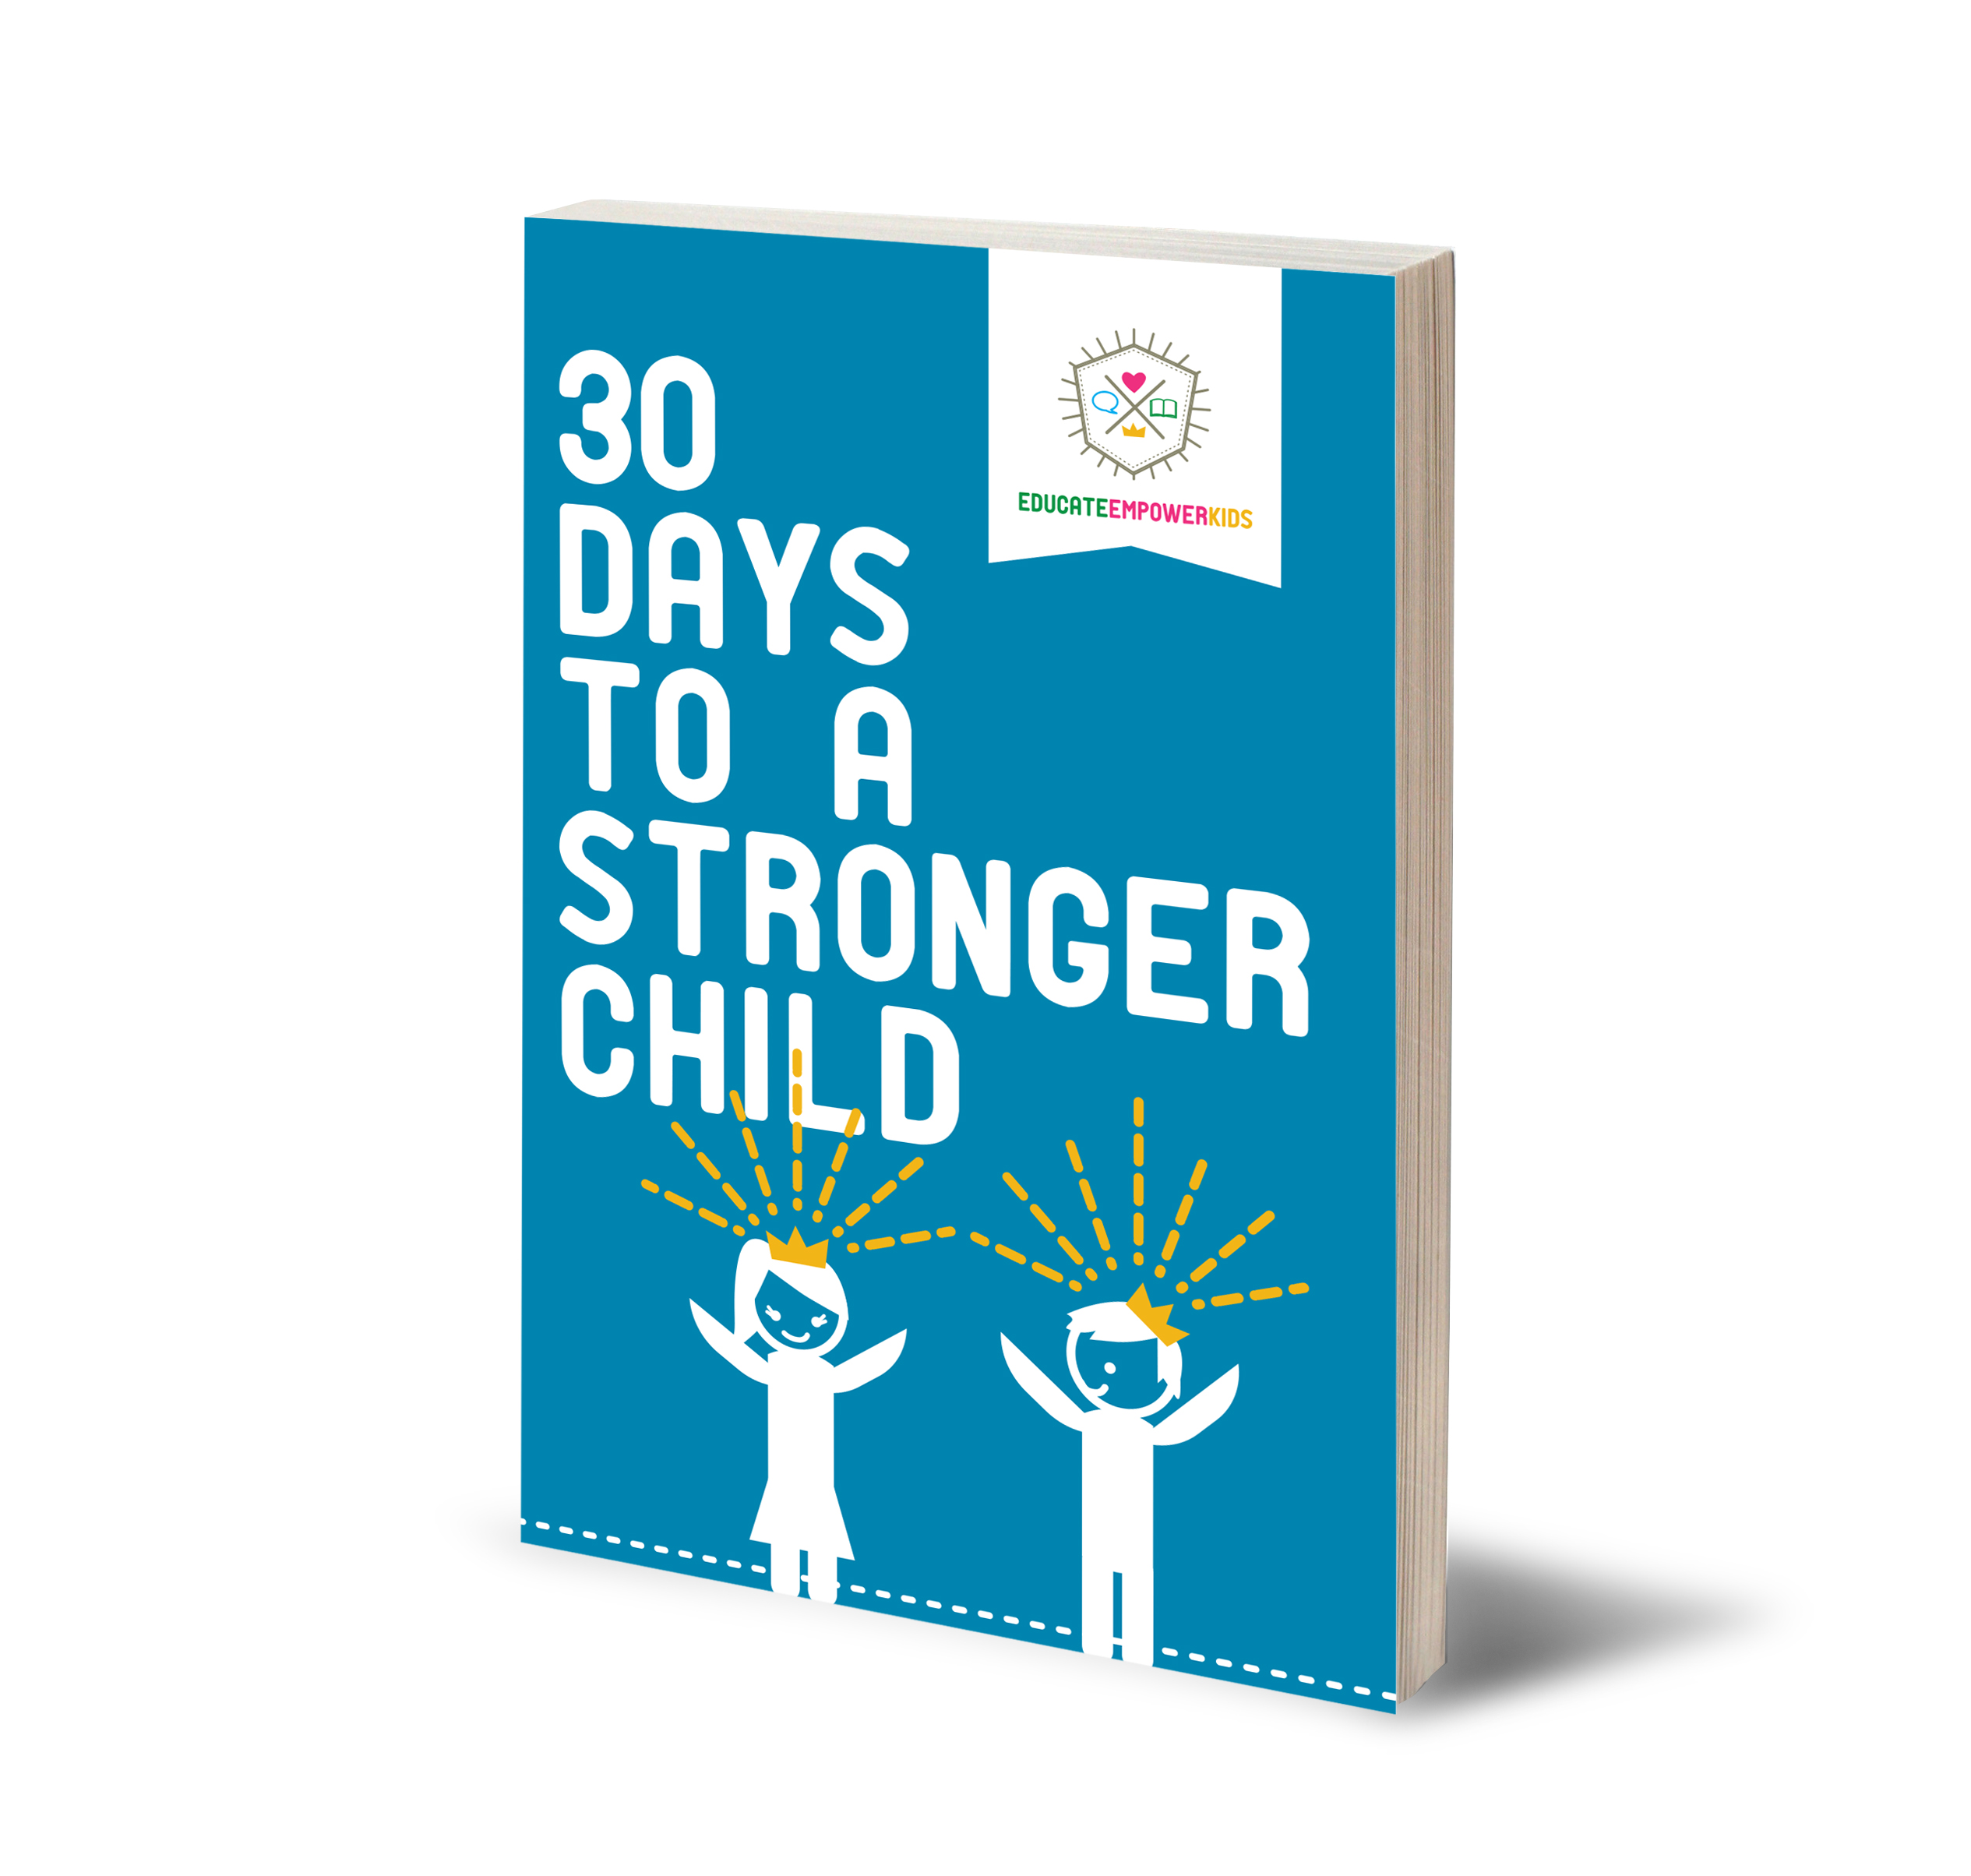 Great new book! 30 Days to a Stronger Child. Tons of great lessons, activities, tips and advice to help you connect with your child and strengthen him/her at the same time. What makes a Strong Child? Find out! And help your child be his/her best self. For parents of kids, teens and tweens. In an uncertain, disconnected world, this is a unique parenting book that increase bonding and builds resilient children! Be the parent you wish you had (Available on Amazon).